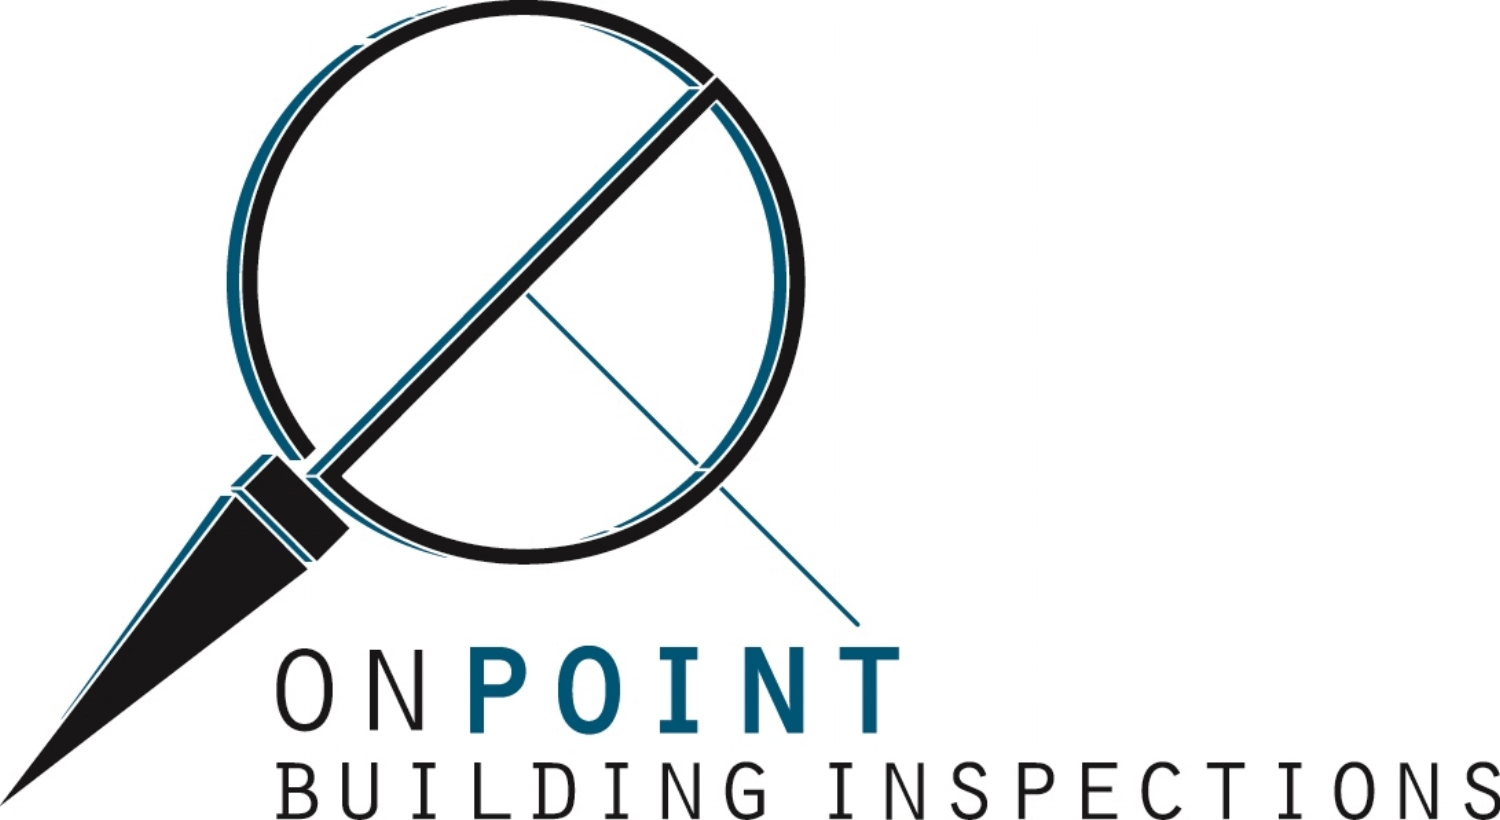 On Point Building Inspections